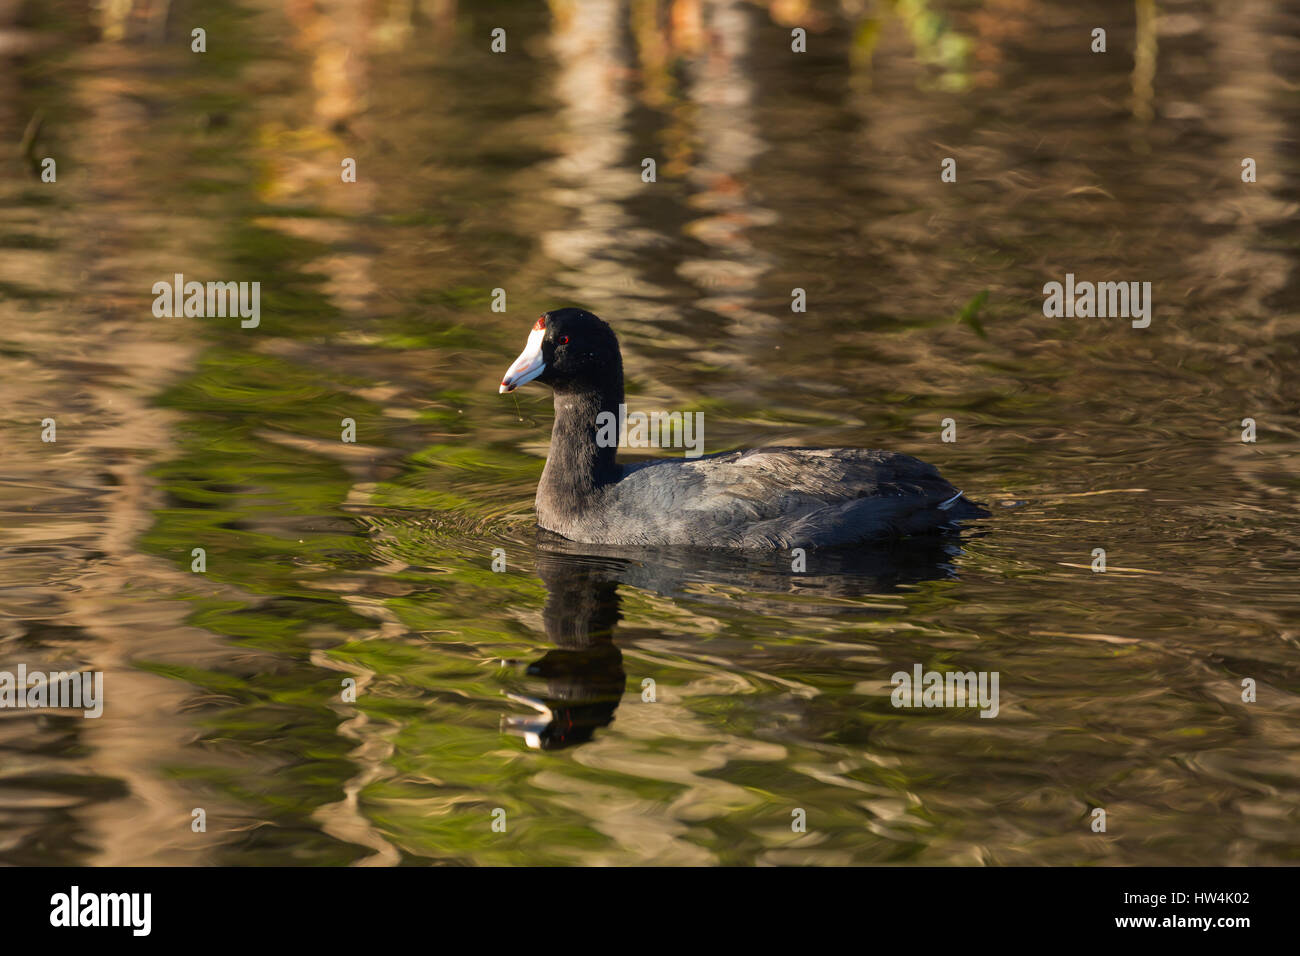 American coot (Fulica americana) swimming, Wakulla Springs State Park, FL, USA Stock Photo